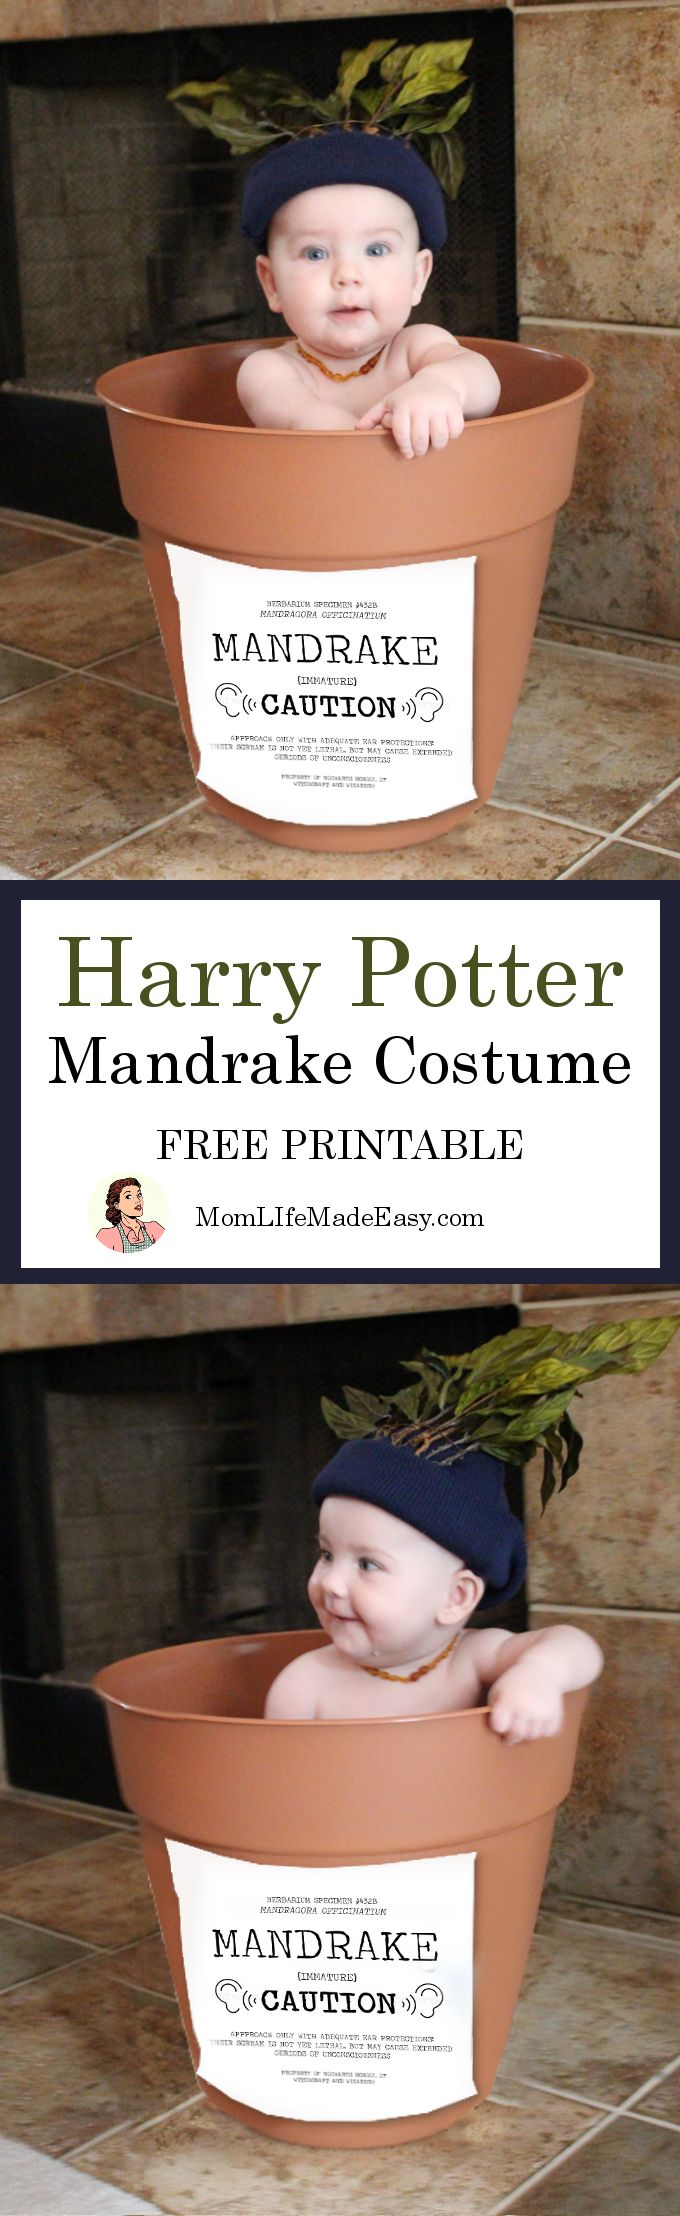 Citaten Uit Harry Potter : Beste ideeën over harry potter citaten op pinterest